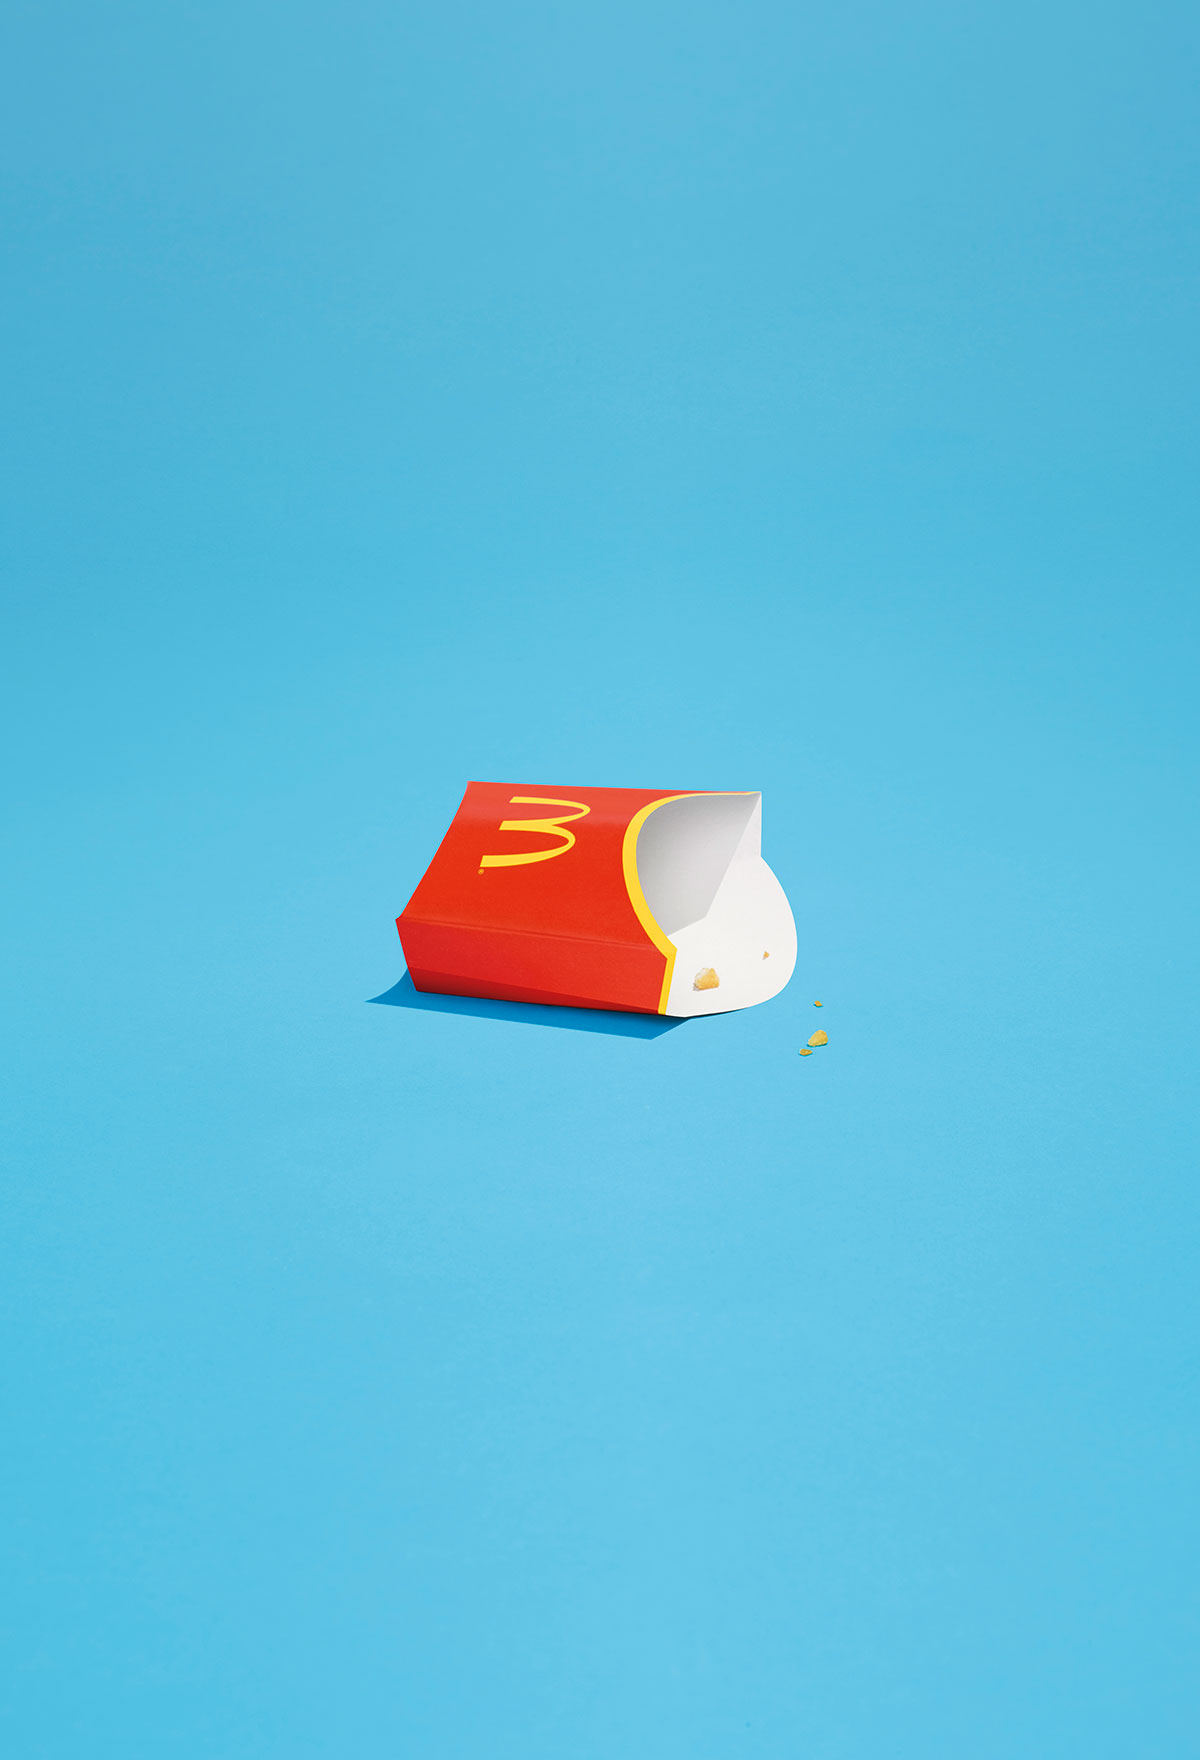 More minimalism from McDonald's